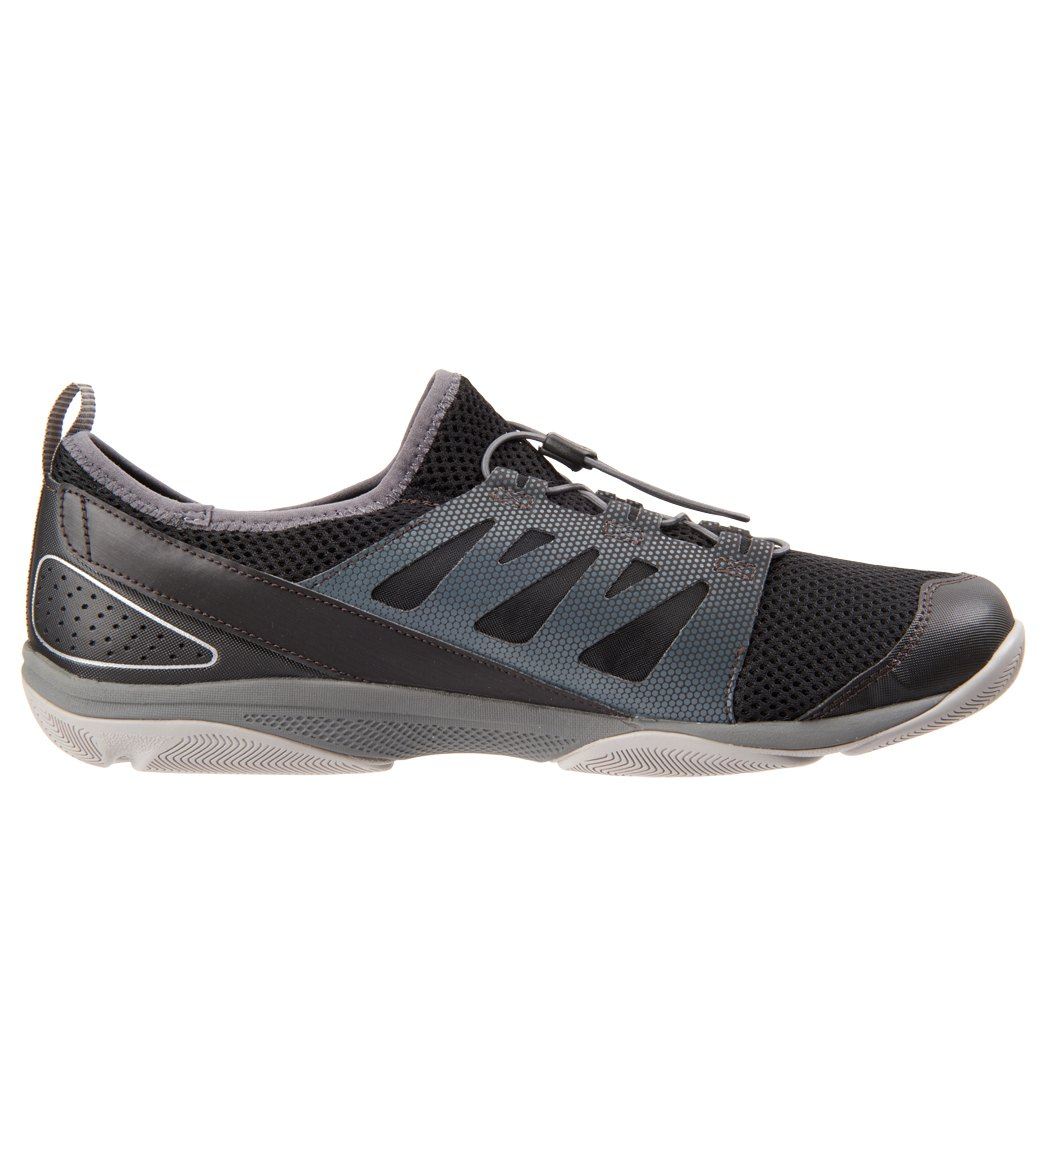 b350ab0b08c4 Helly Hansen Men s Aquapace 2 Water Shoes at SwimOutlet.com - Free ...